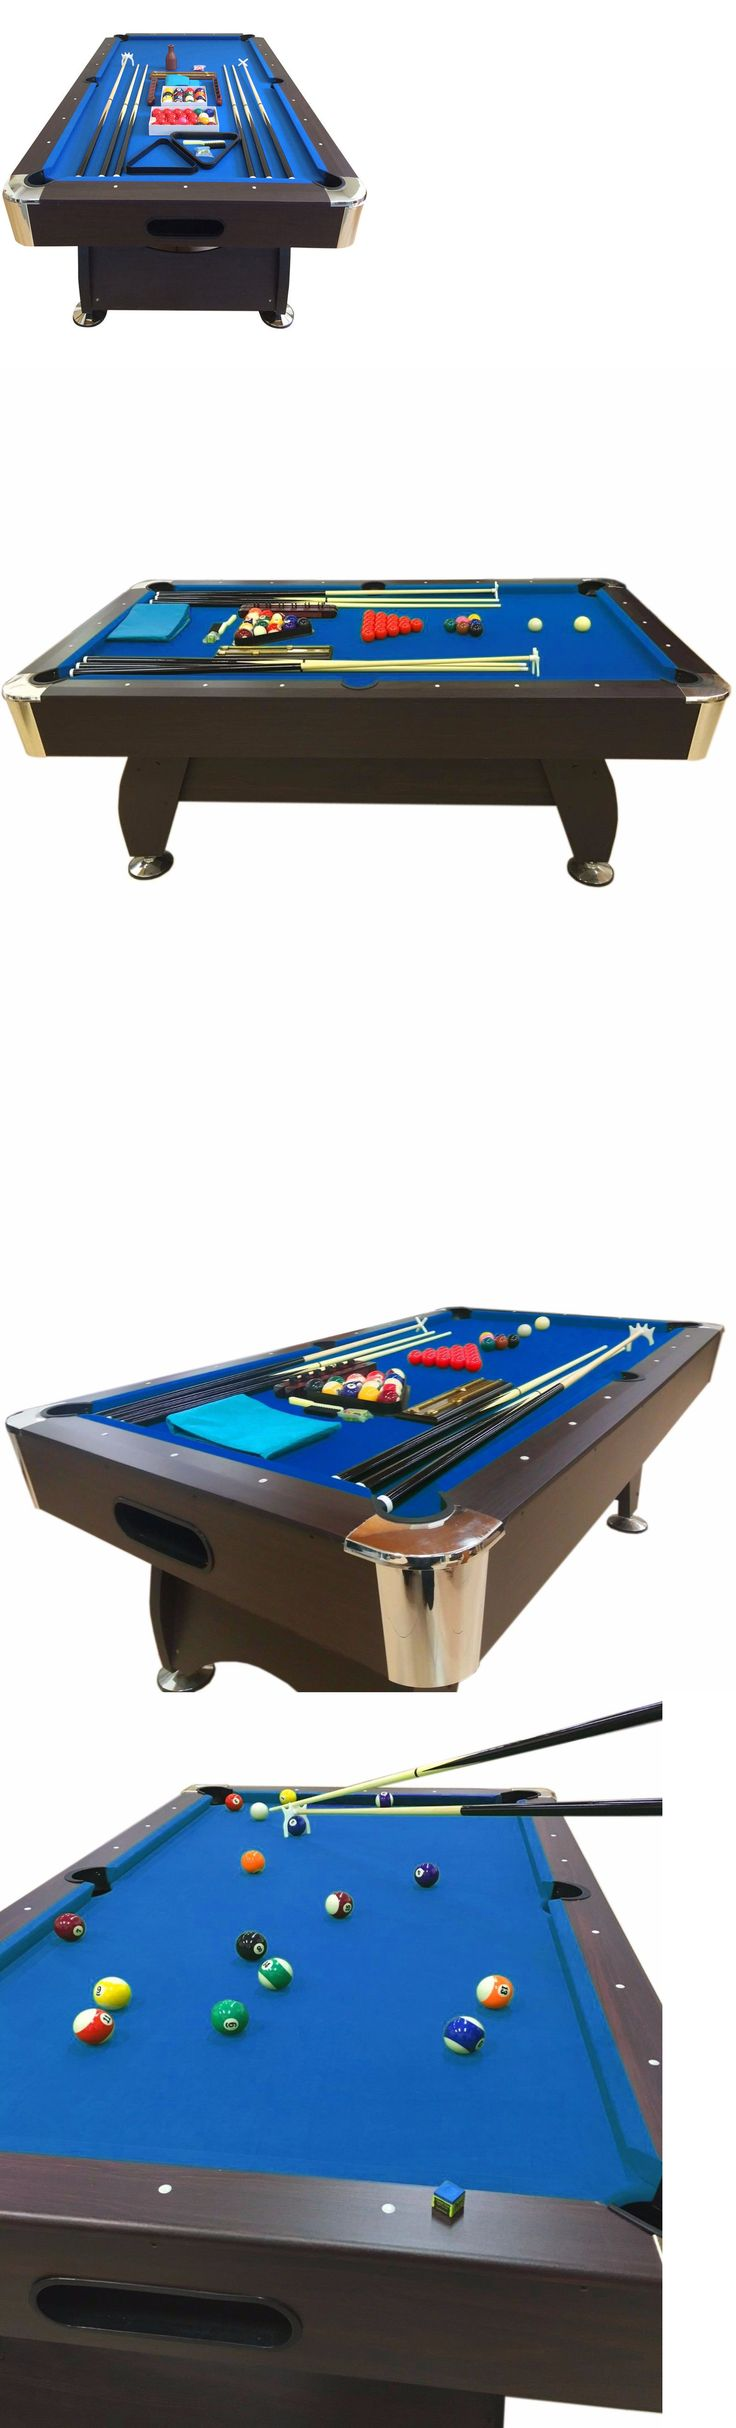 Pool table legs accessories for sale - Tables 21213 7 Feet Billiard Pool Table Snooker Full Set Accessories Game Mod Blue